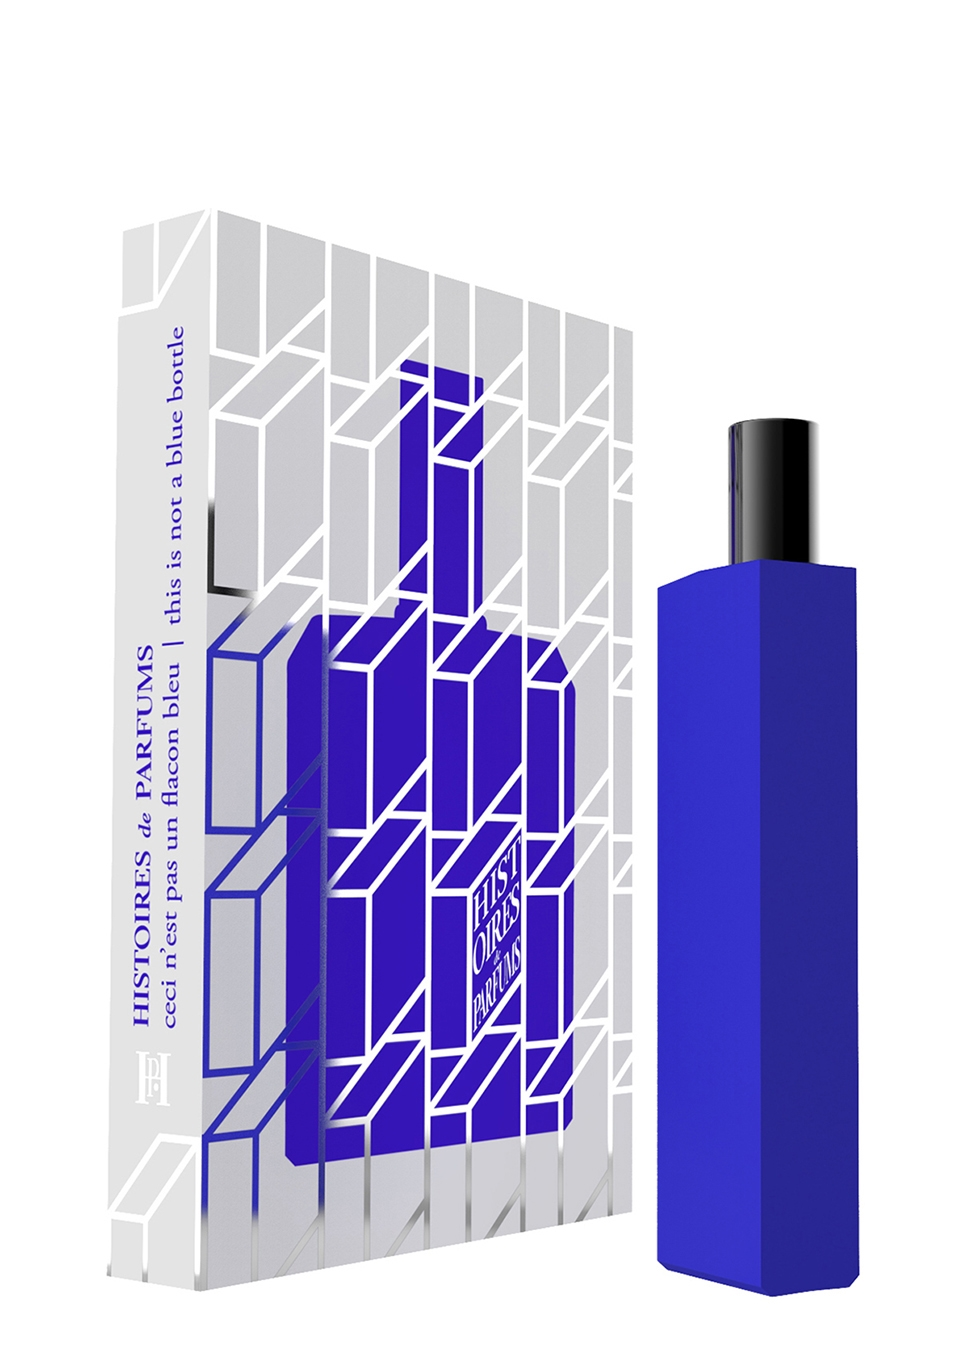 This Is Not A Blue Bottle 1.1 15ml - Histoires de Parfums